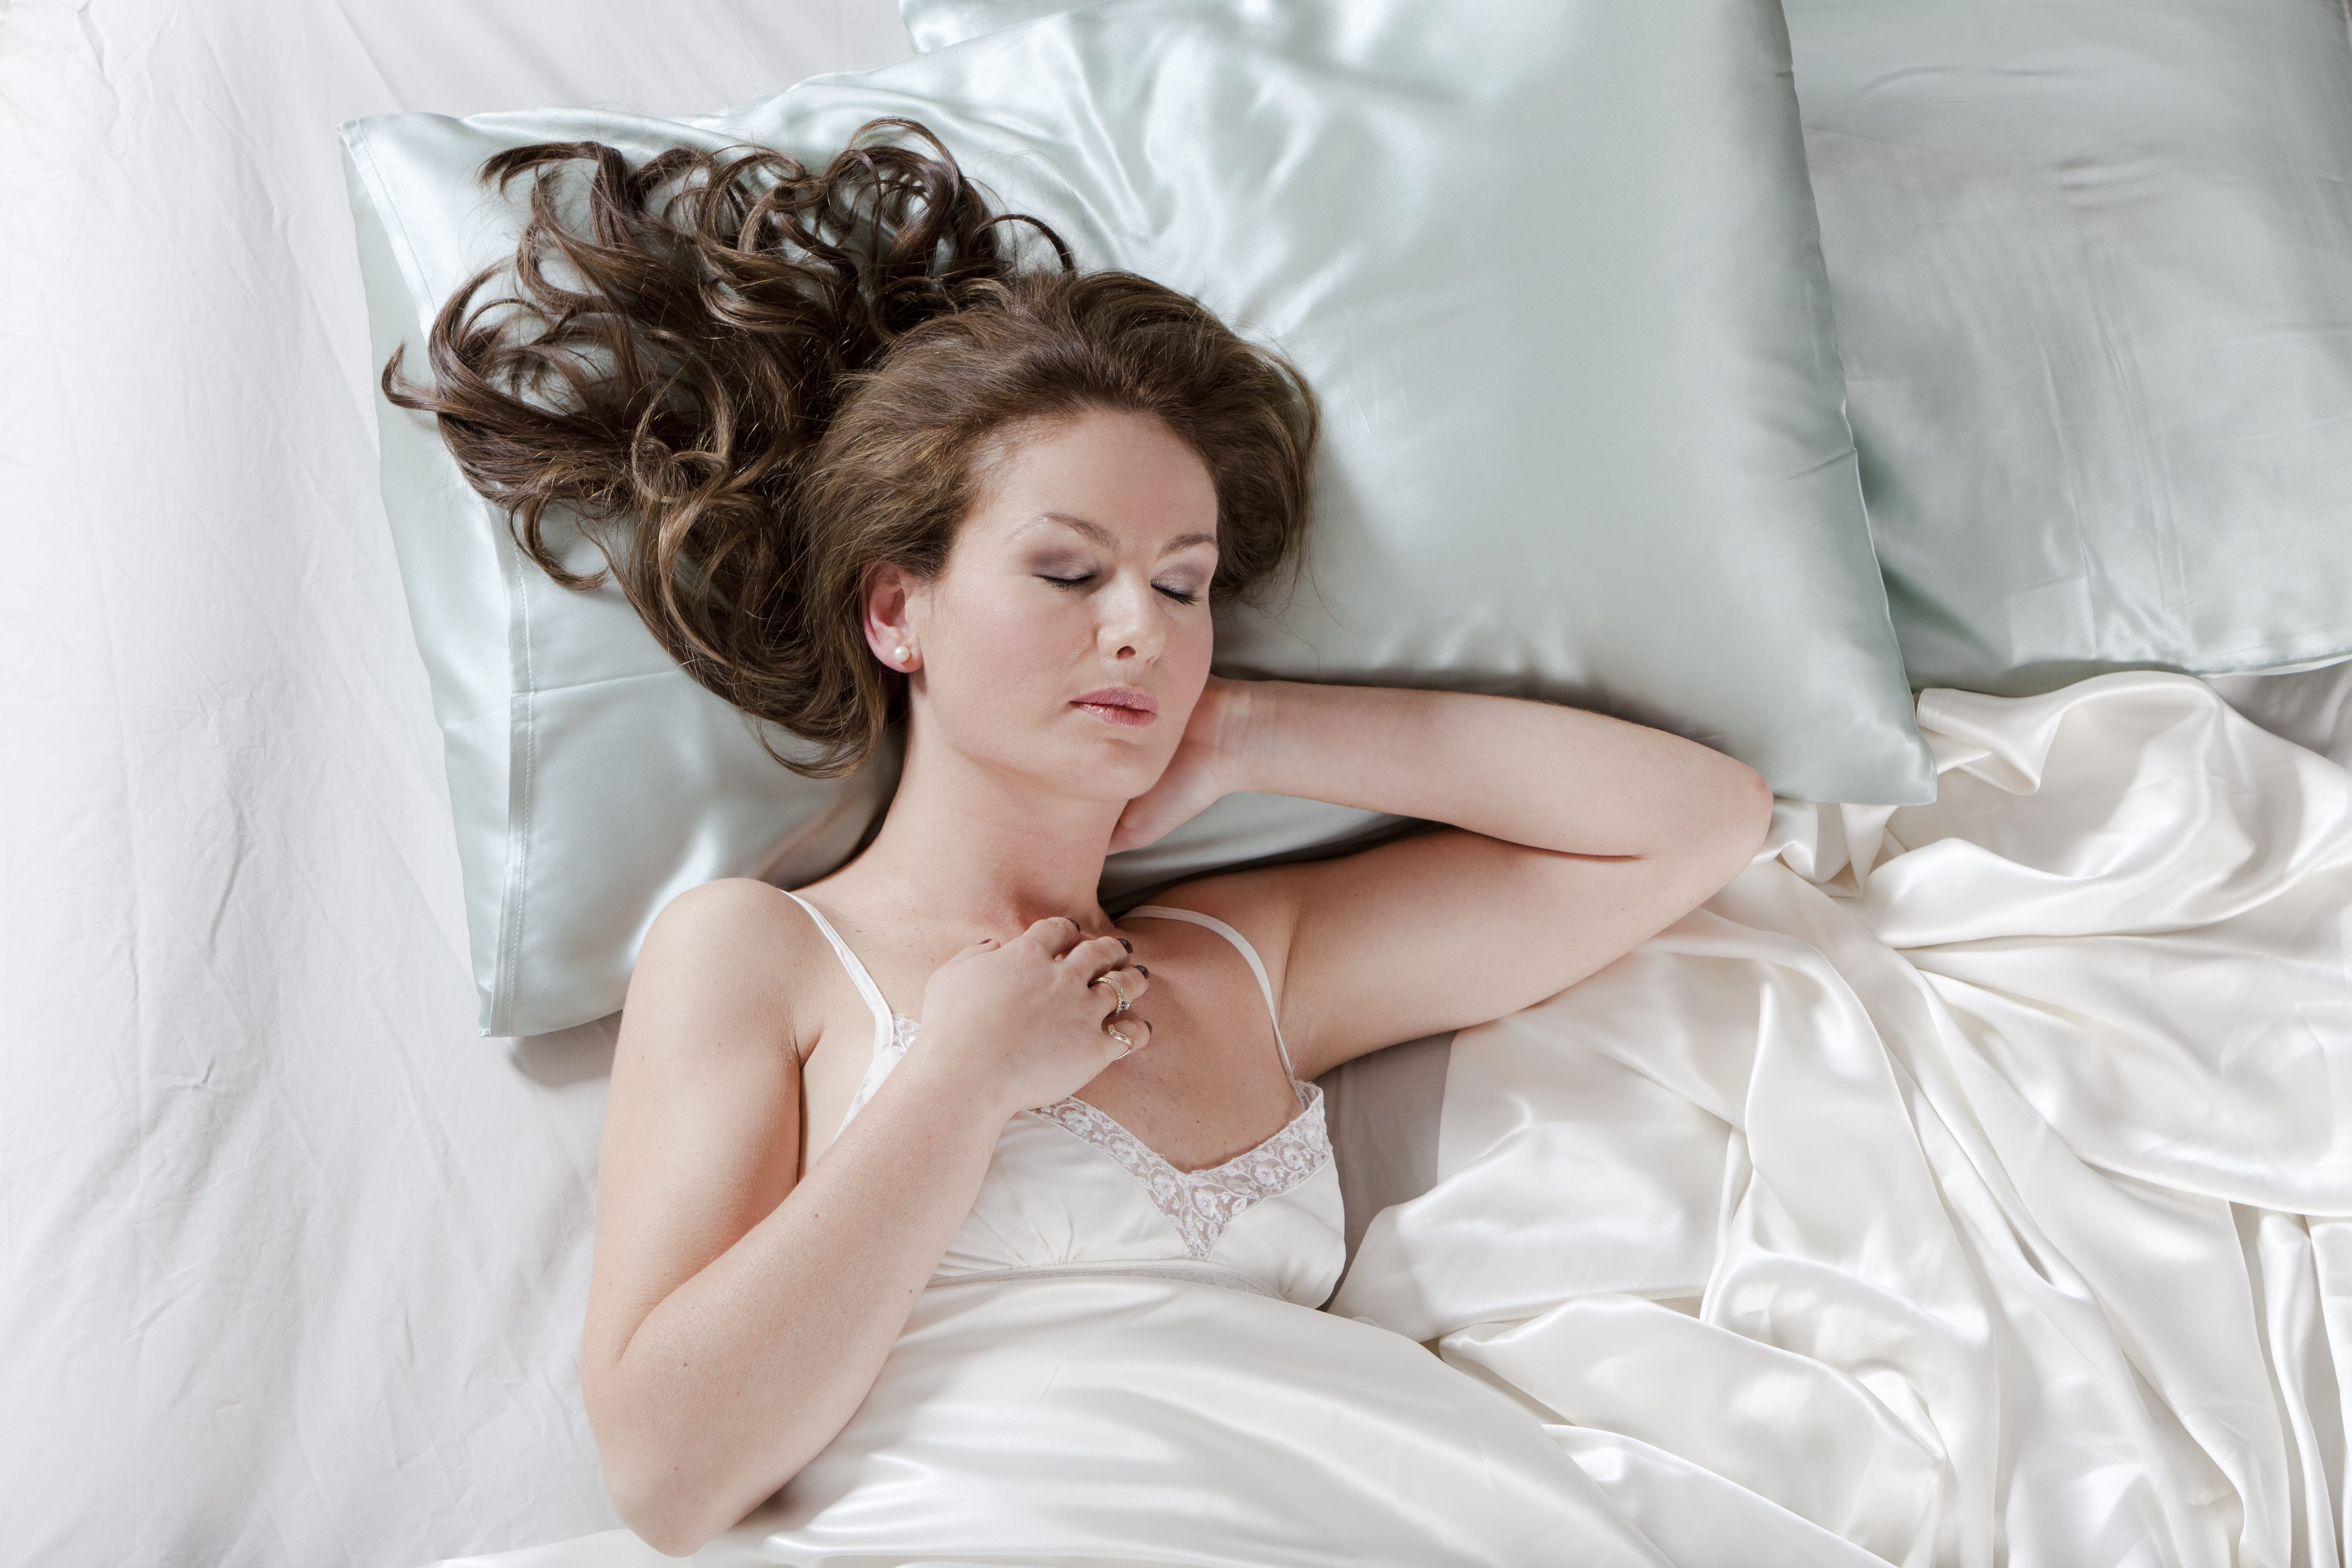 woman with long brown hair sleeping on a silk pillow